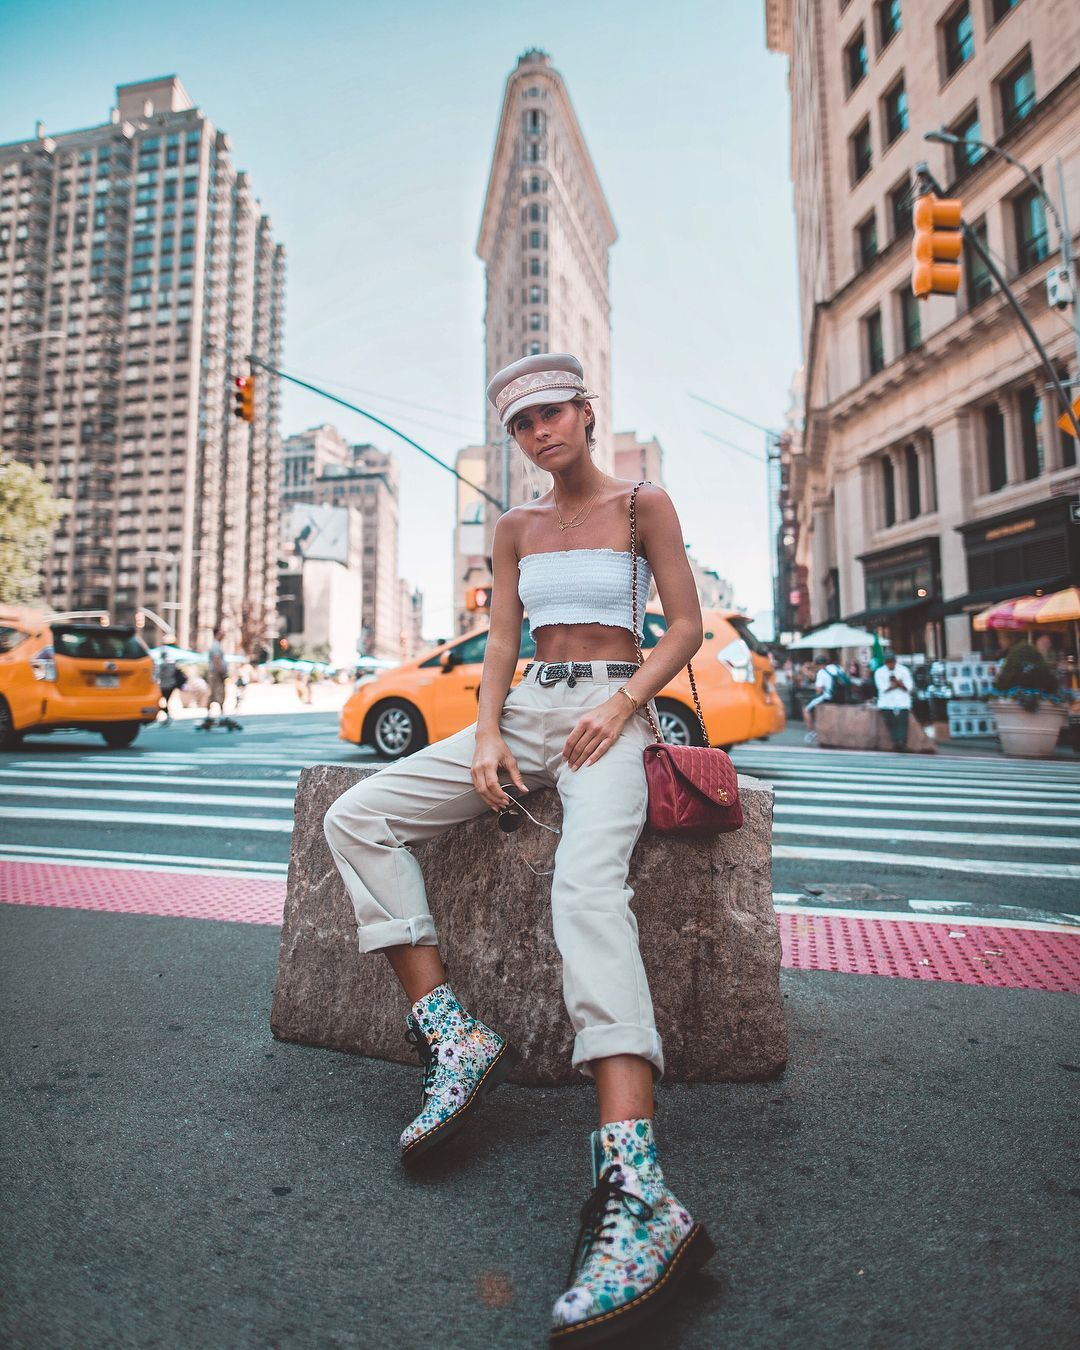 "DEBI FLÜGGE on Instagram: ""Touchdown in NYC! 🗽😍 #nyc #summer #outfit #travel #fashion"